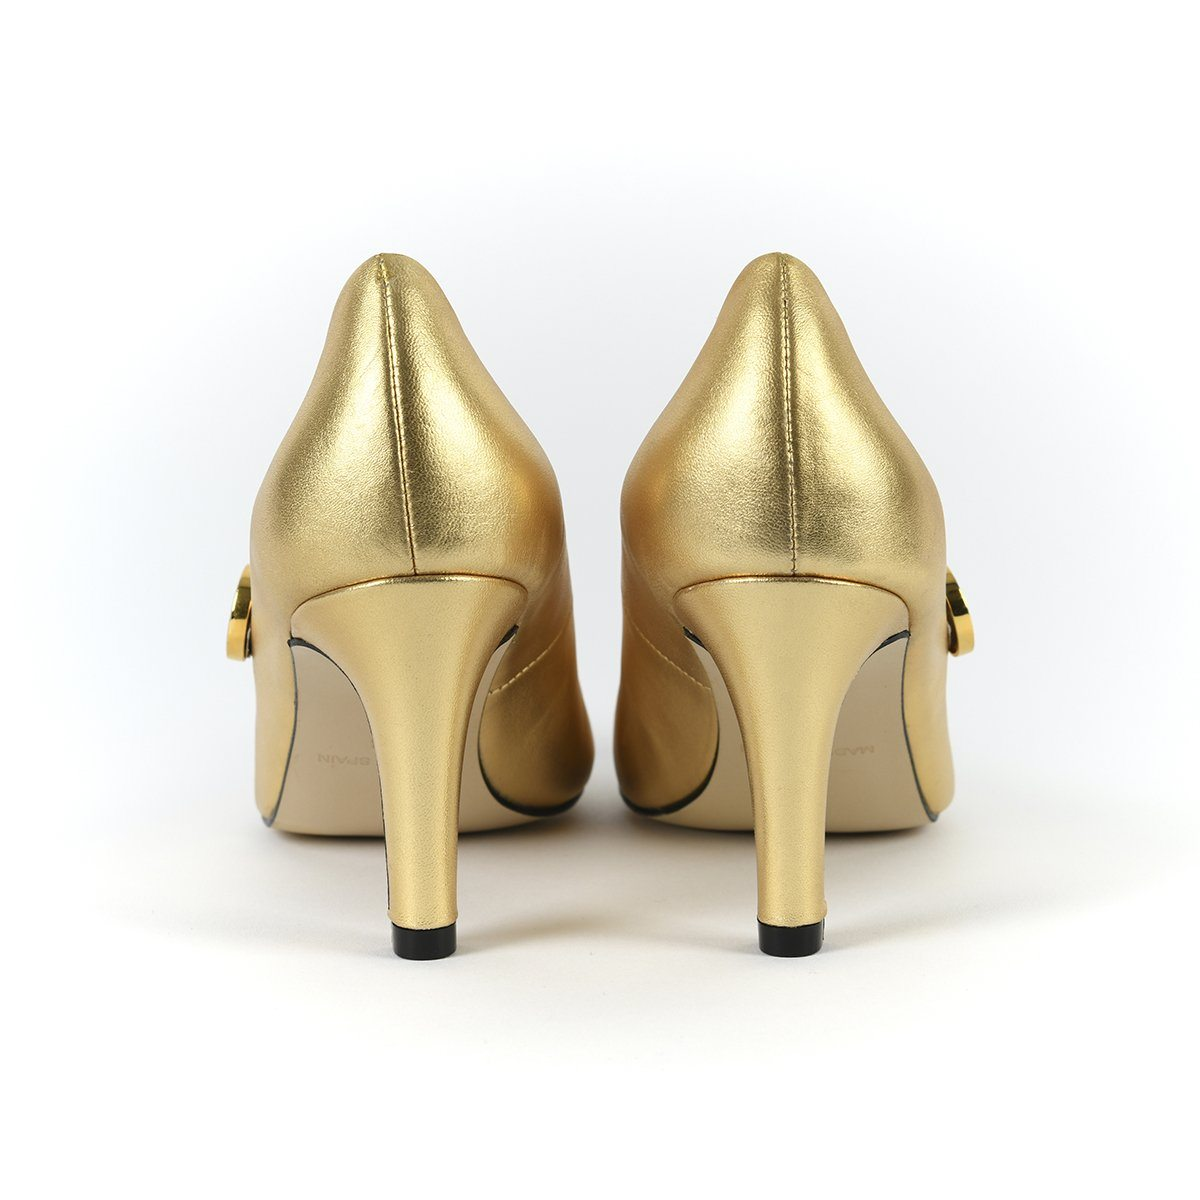 Stand Tall Sister - 18 Hour Heels - Metallic Gold - Shoes by Shaherazad